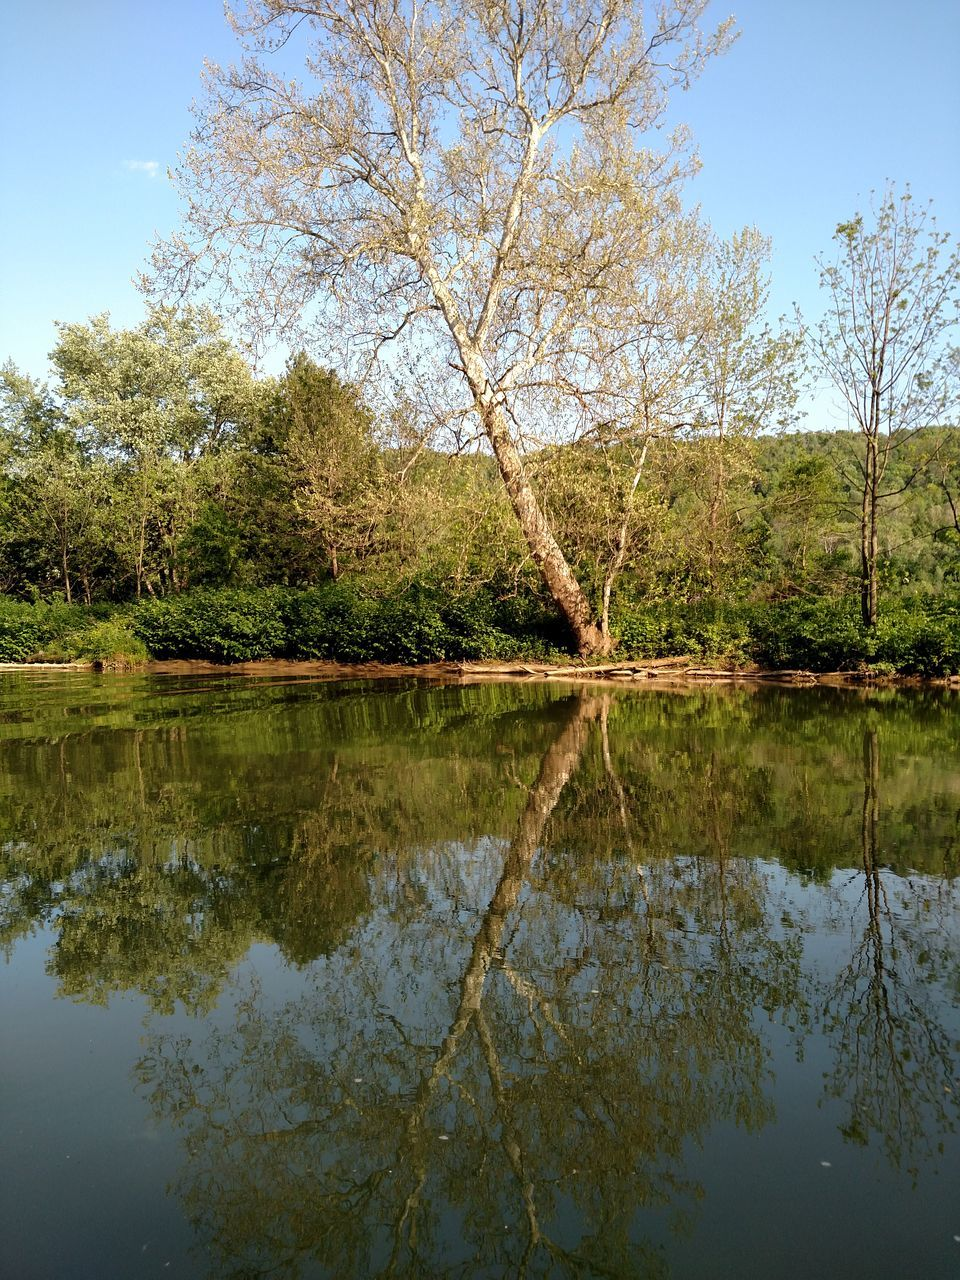 reflection, tree, lake, water, nature, tranquility, tranquil scene, beauty in nature, day, outdoors, no people, waterfront, scenics, sky, branch